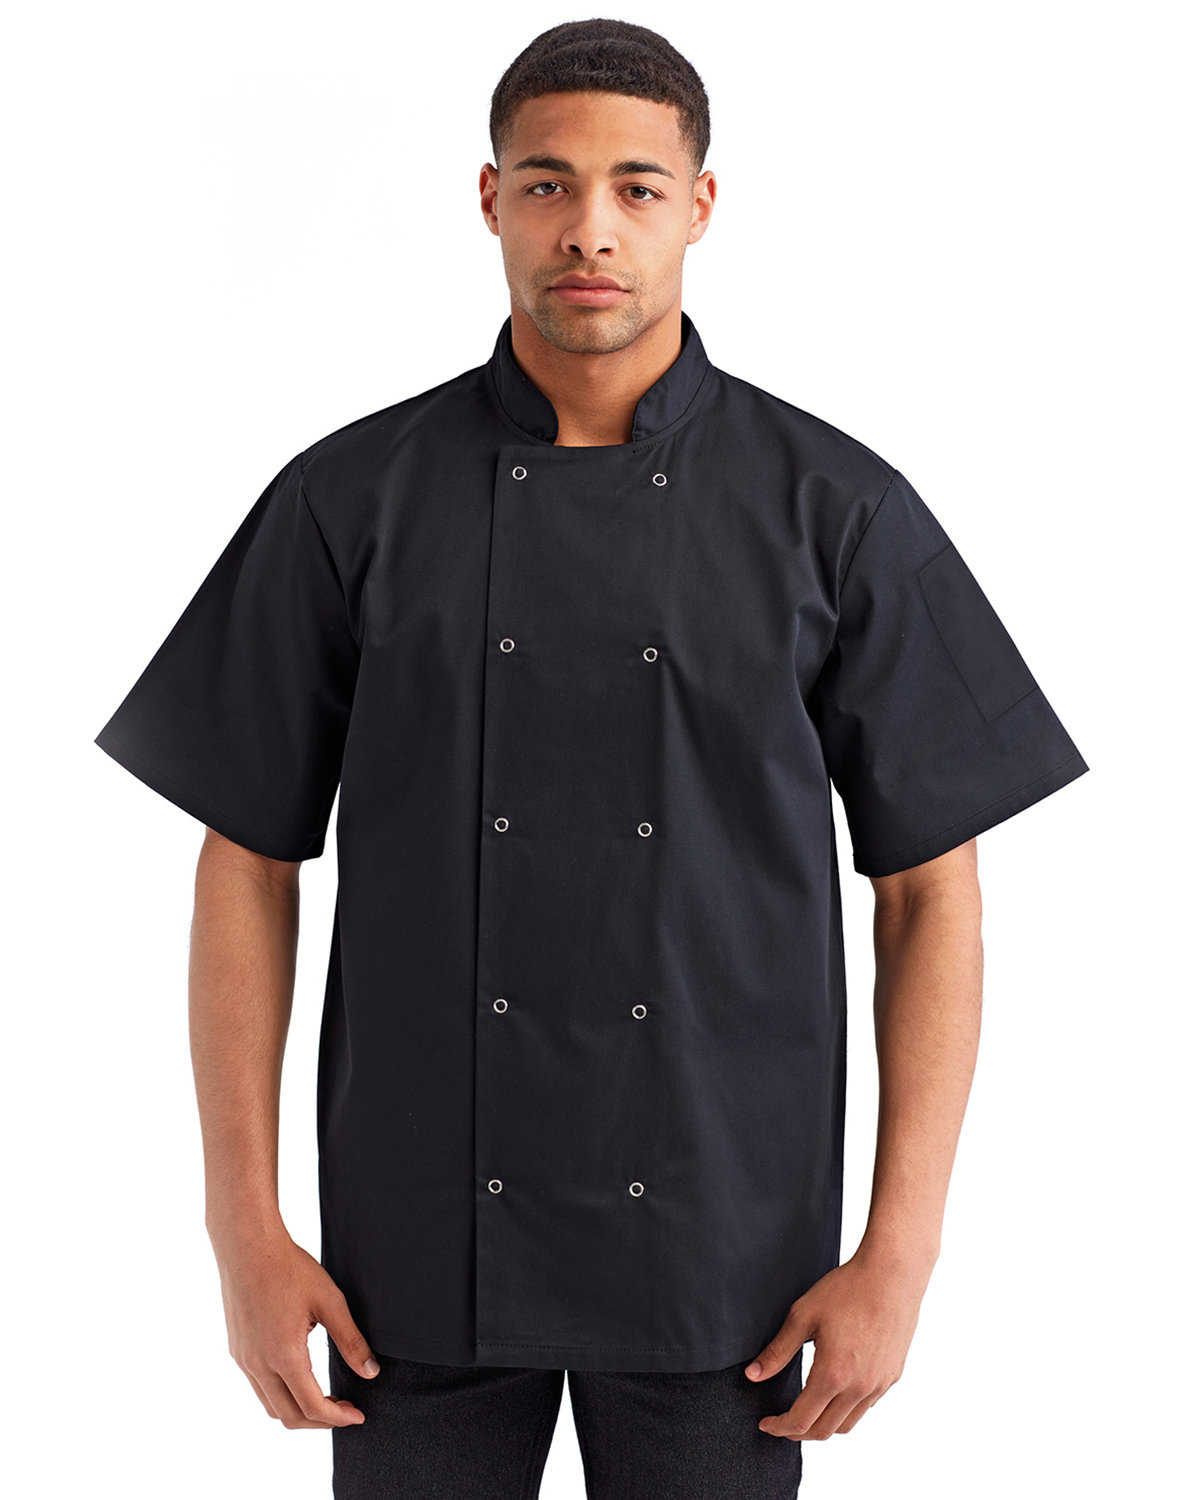 Artisan Collection by Reprime Unisex Studded Front Short-Sleeve Chef's Coat BLACK